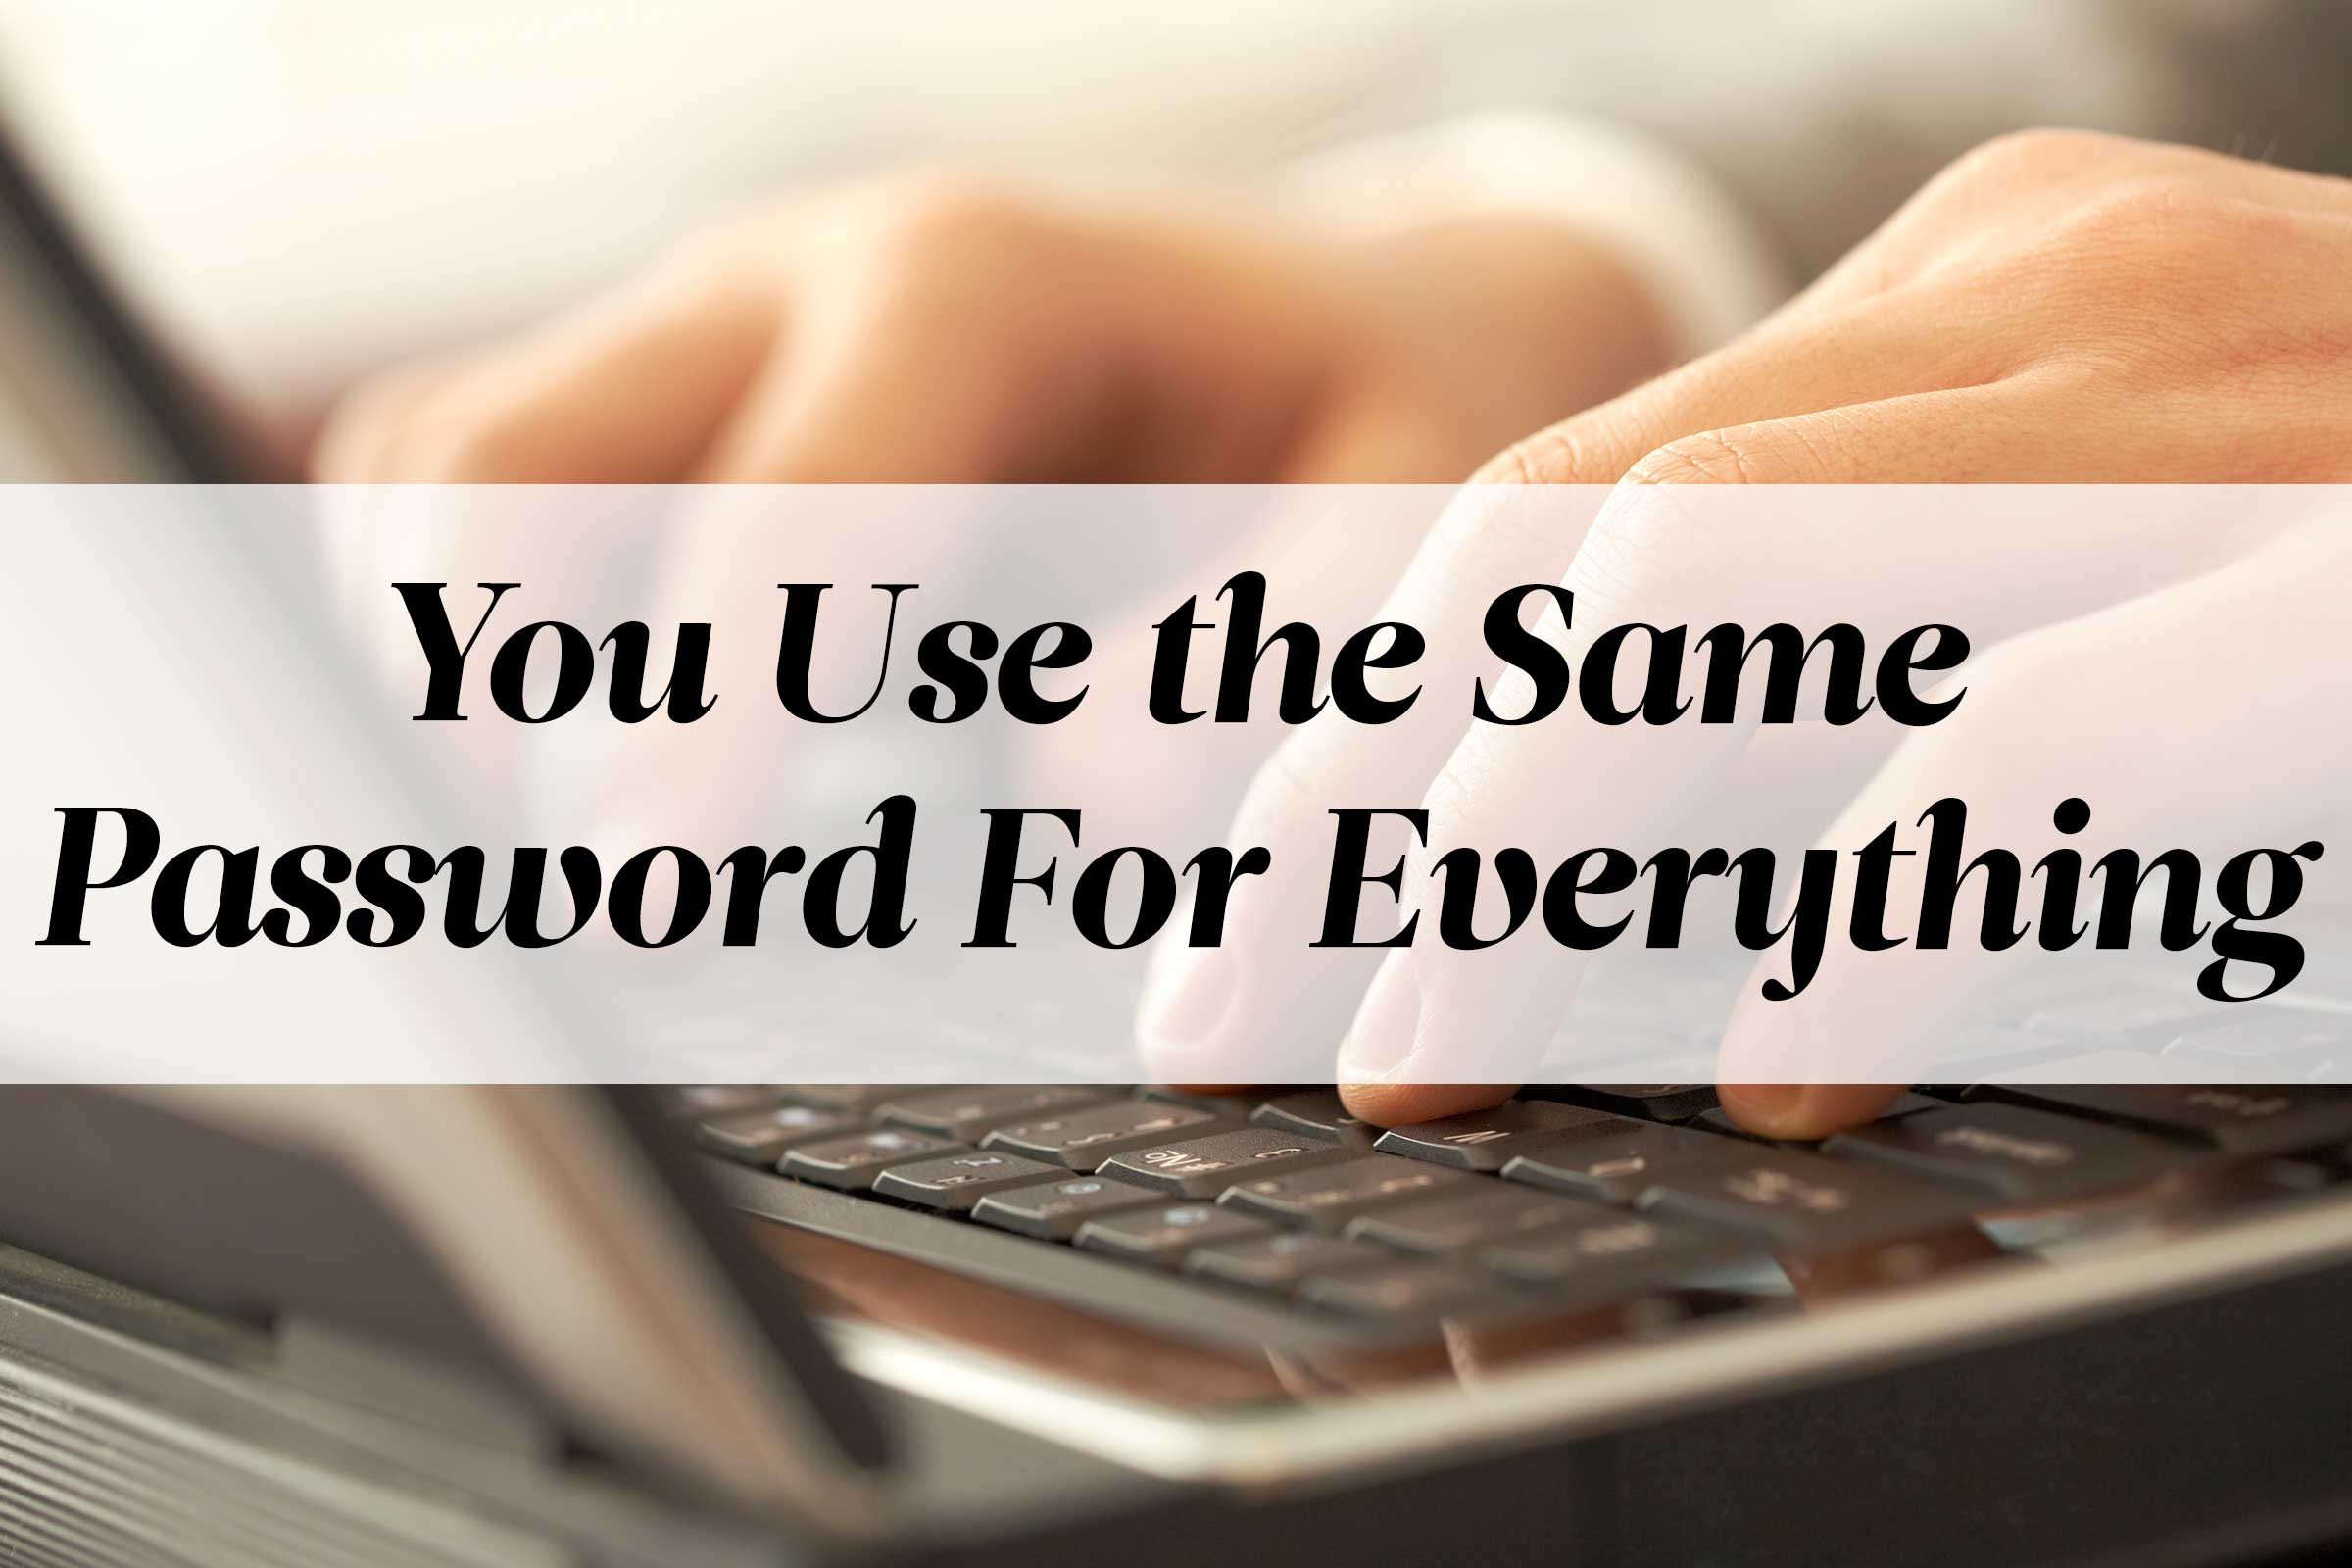 You Use the Same Password For Everything